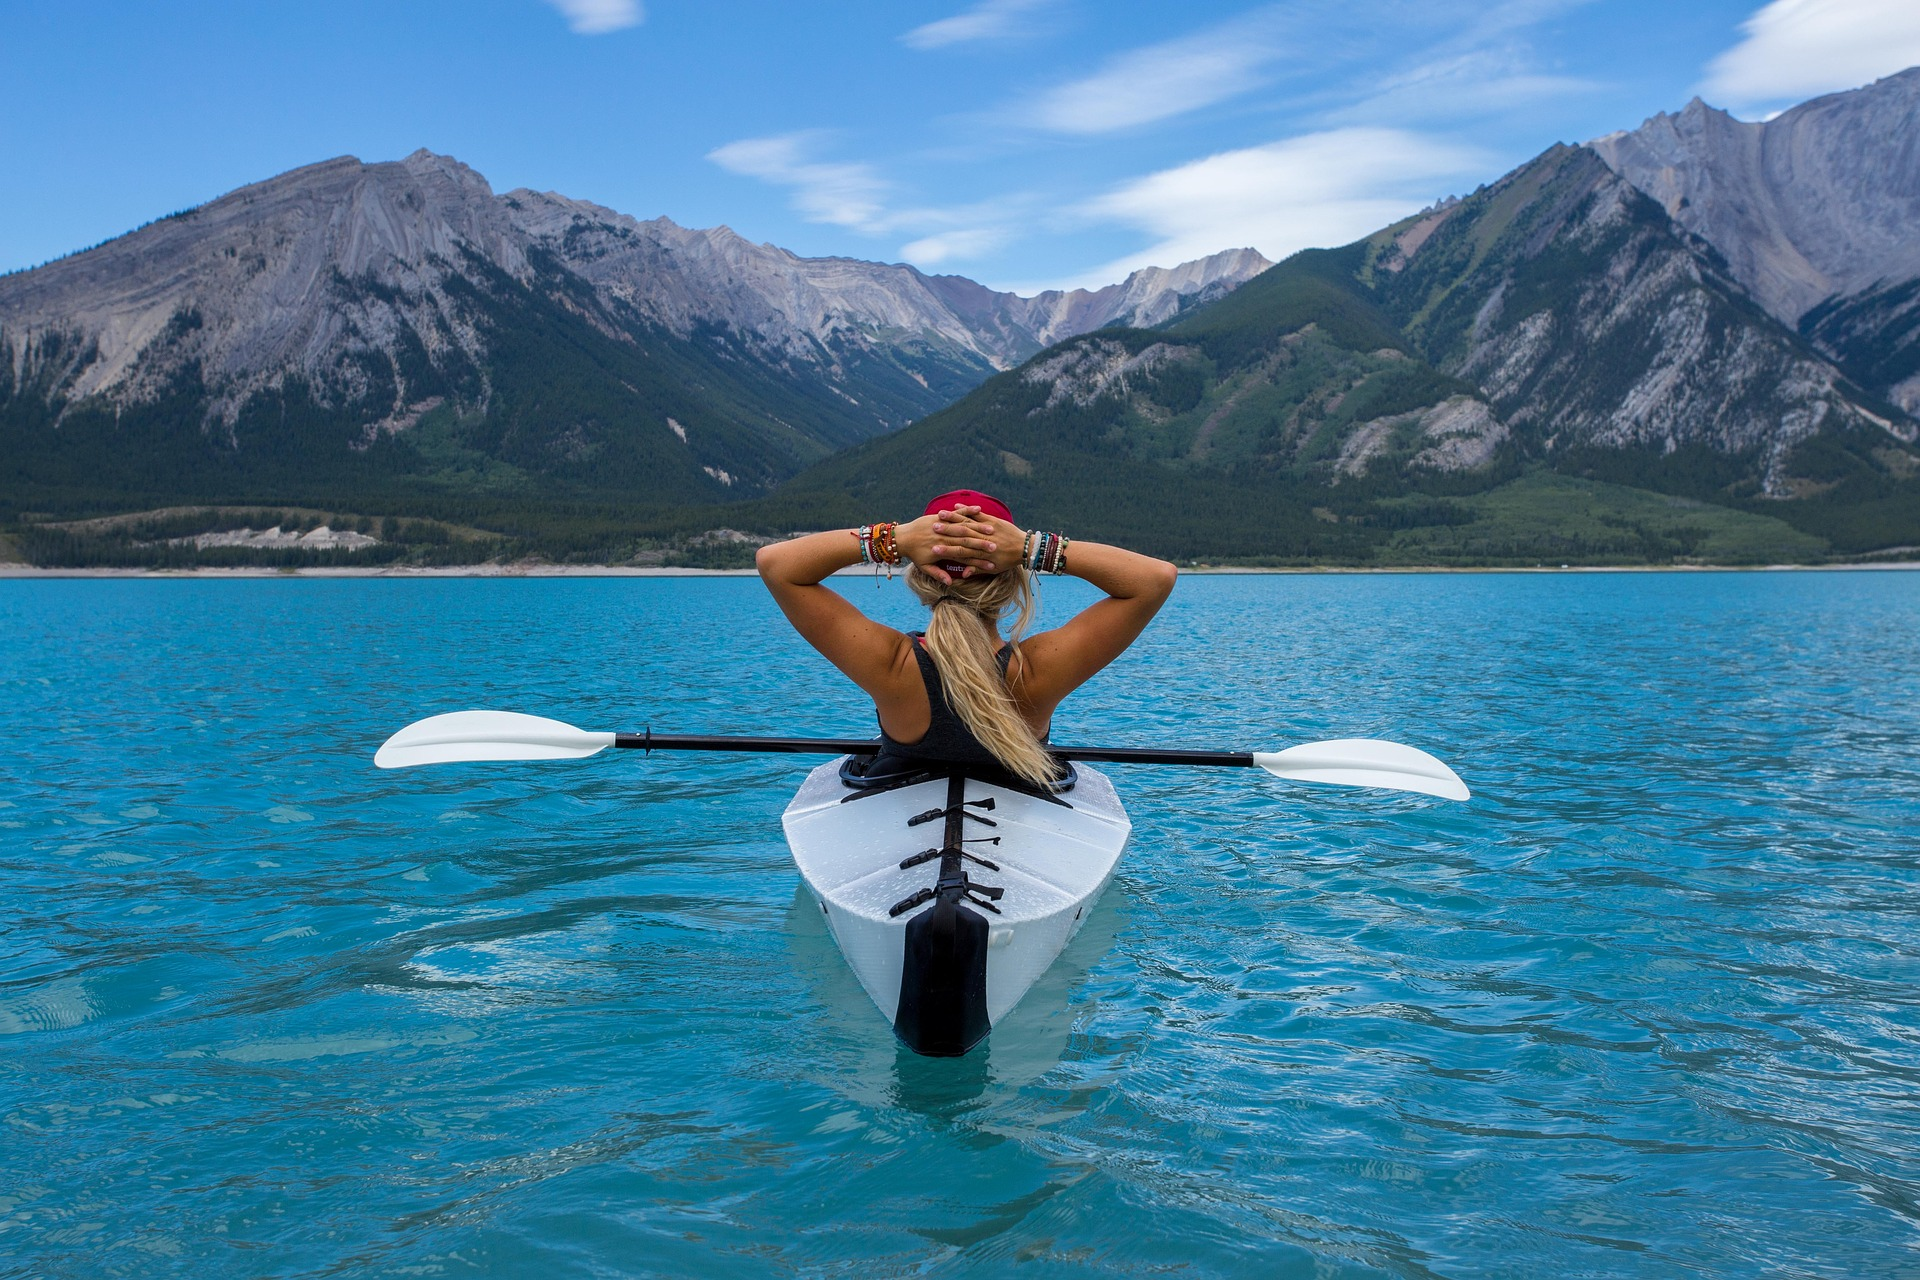 woman in kayak admiring view